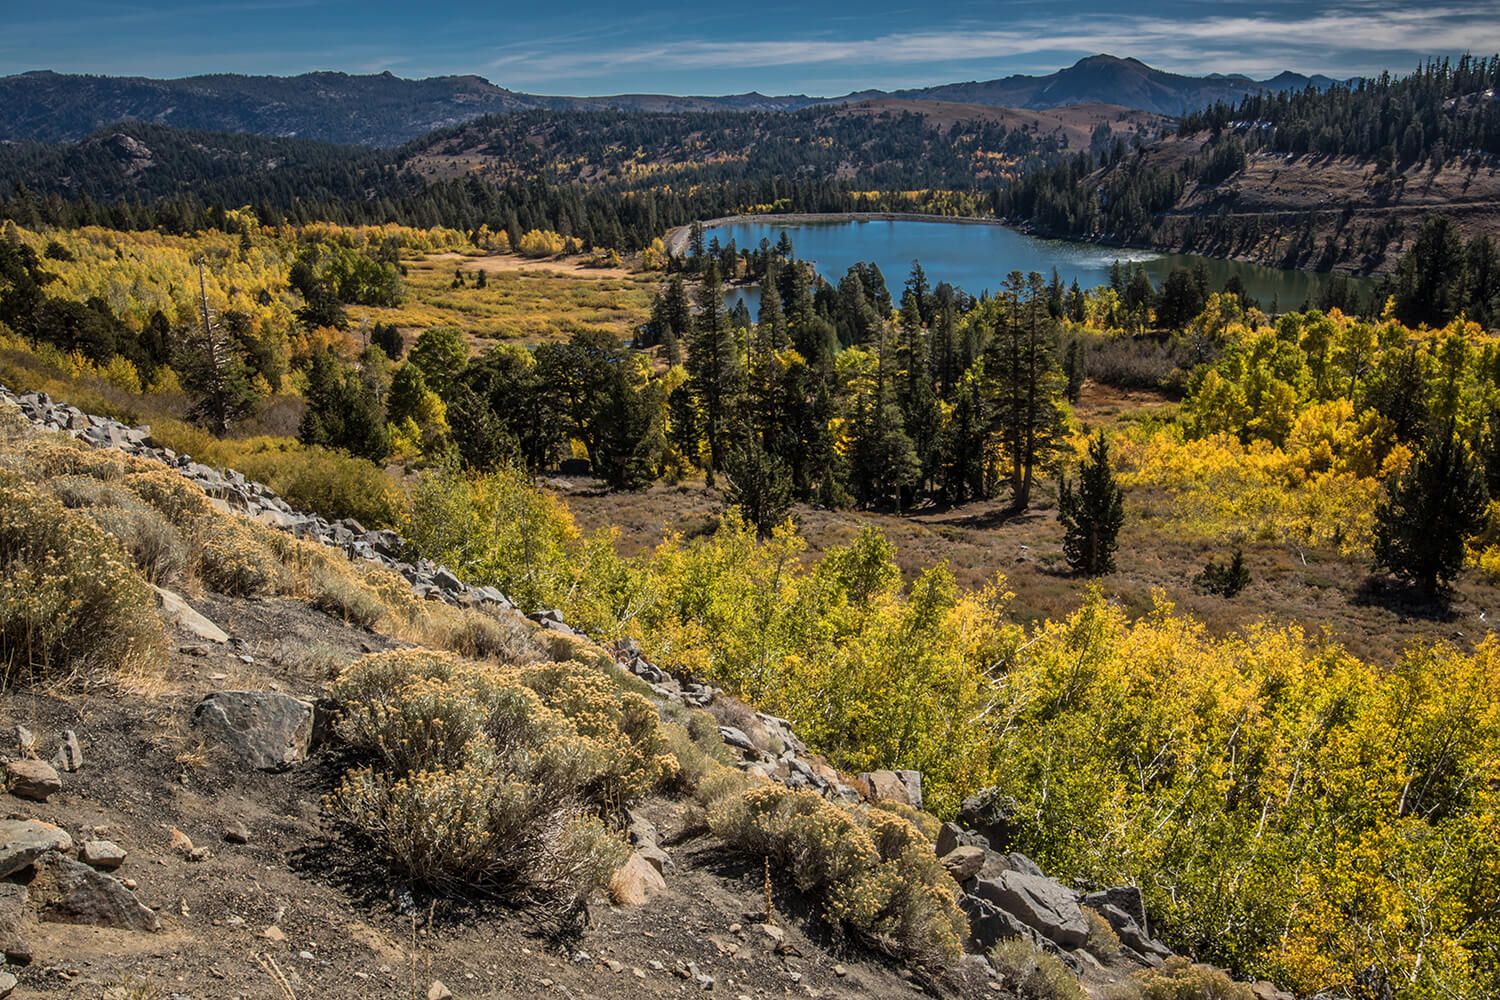 Fall Photography - Red Lake (Carson Pass Highway)